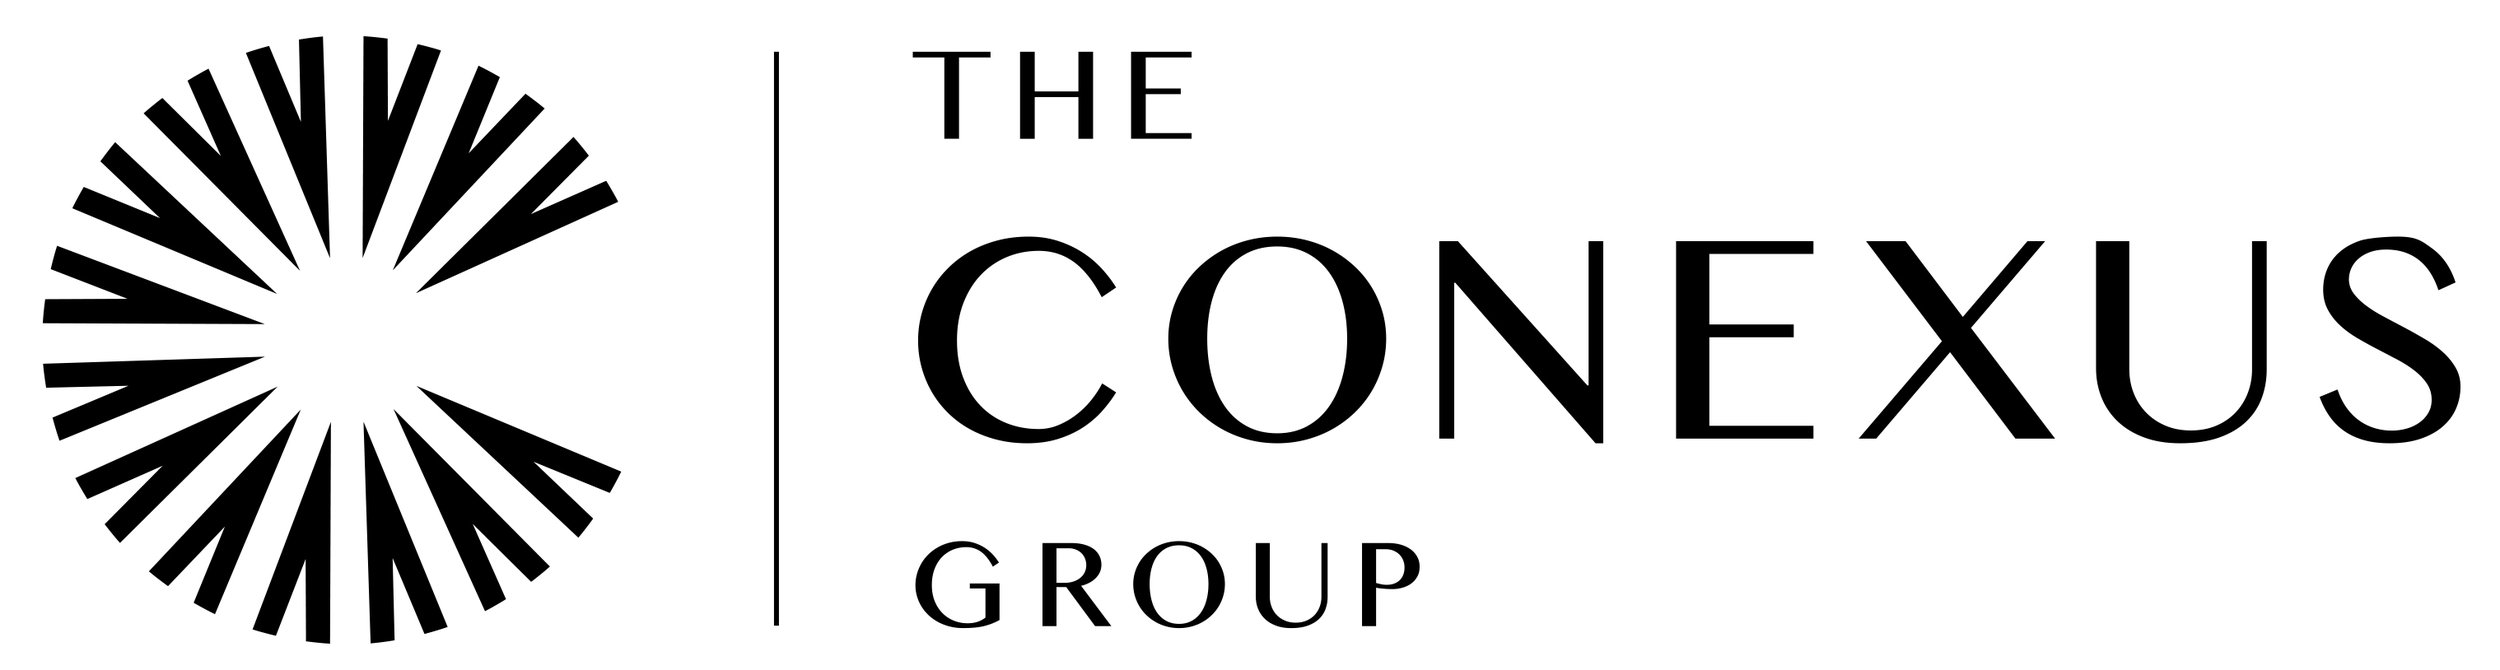 The Conexus Group Logo RGB.jpg